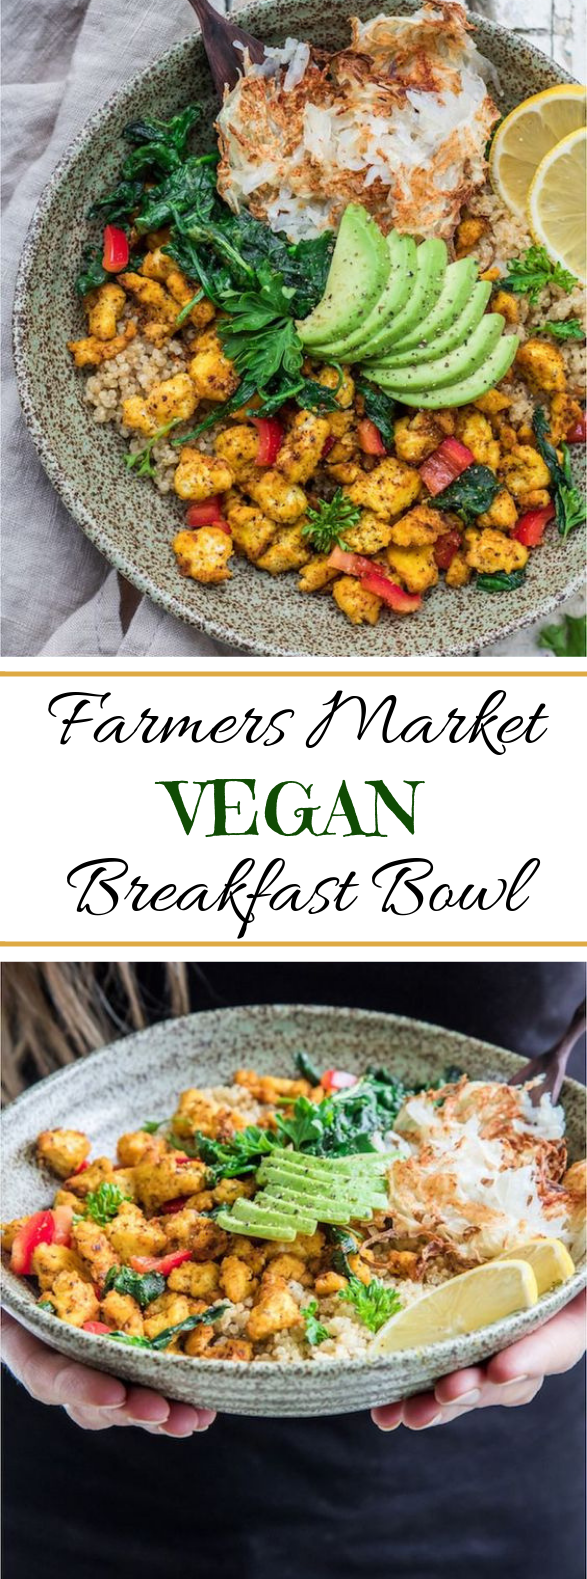 Farmers Market Vegan Breakfast Bowl #vegetarian #breakfast